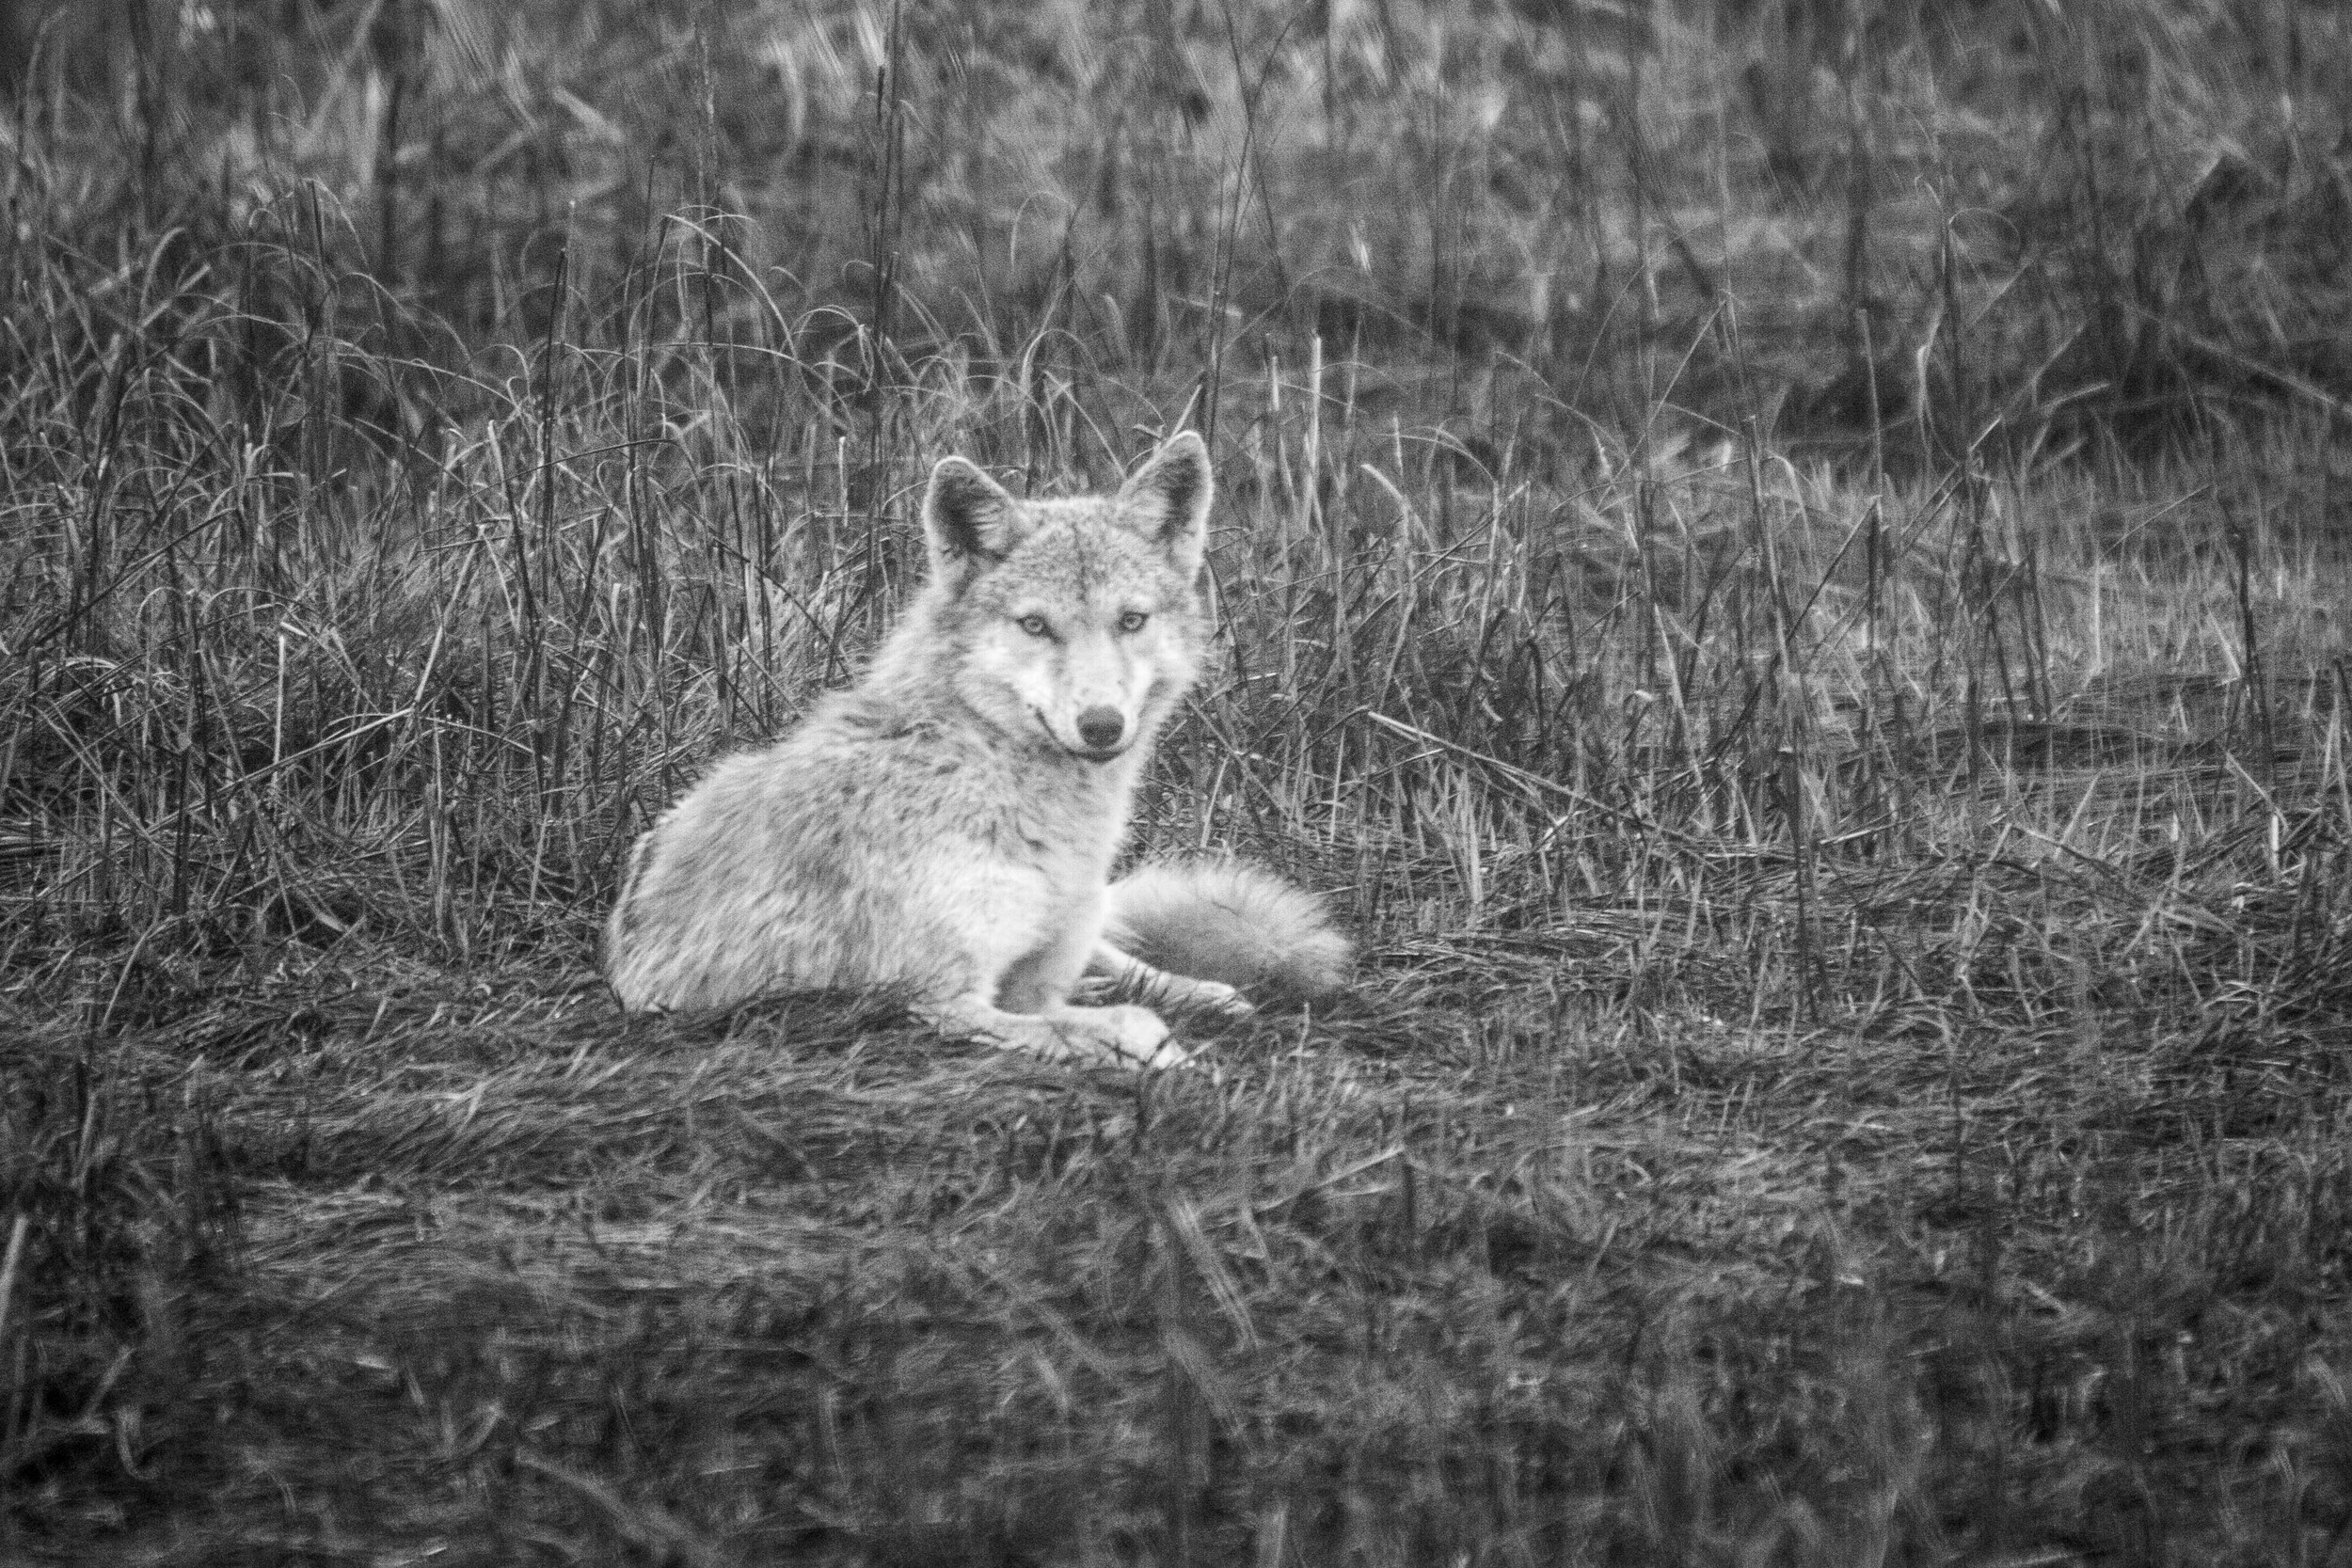 A coyote rests in the grass on a foggy morning inside the Galilee Bird Sanctuary in Narragansett, Rhode Island.